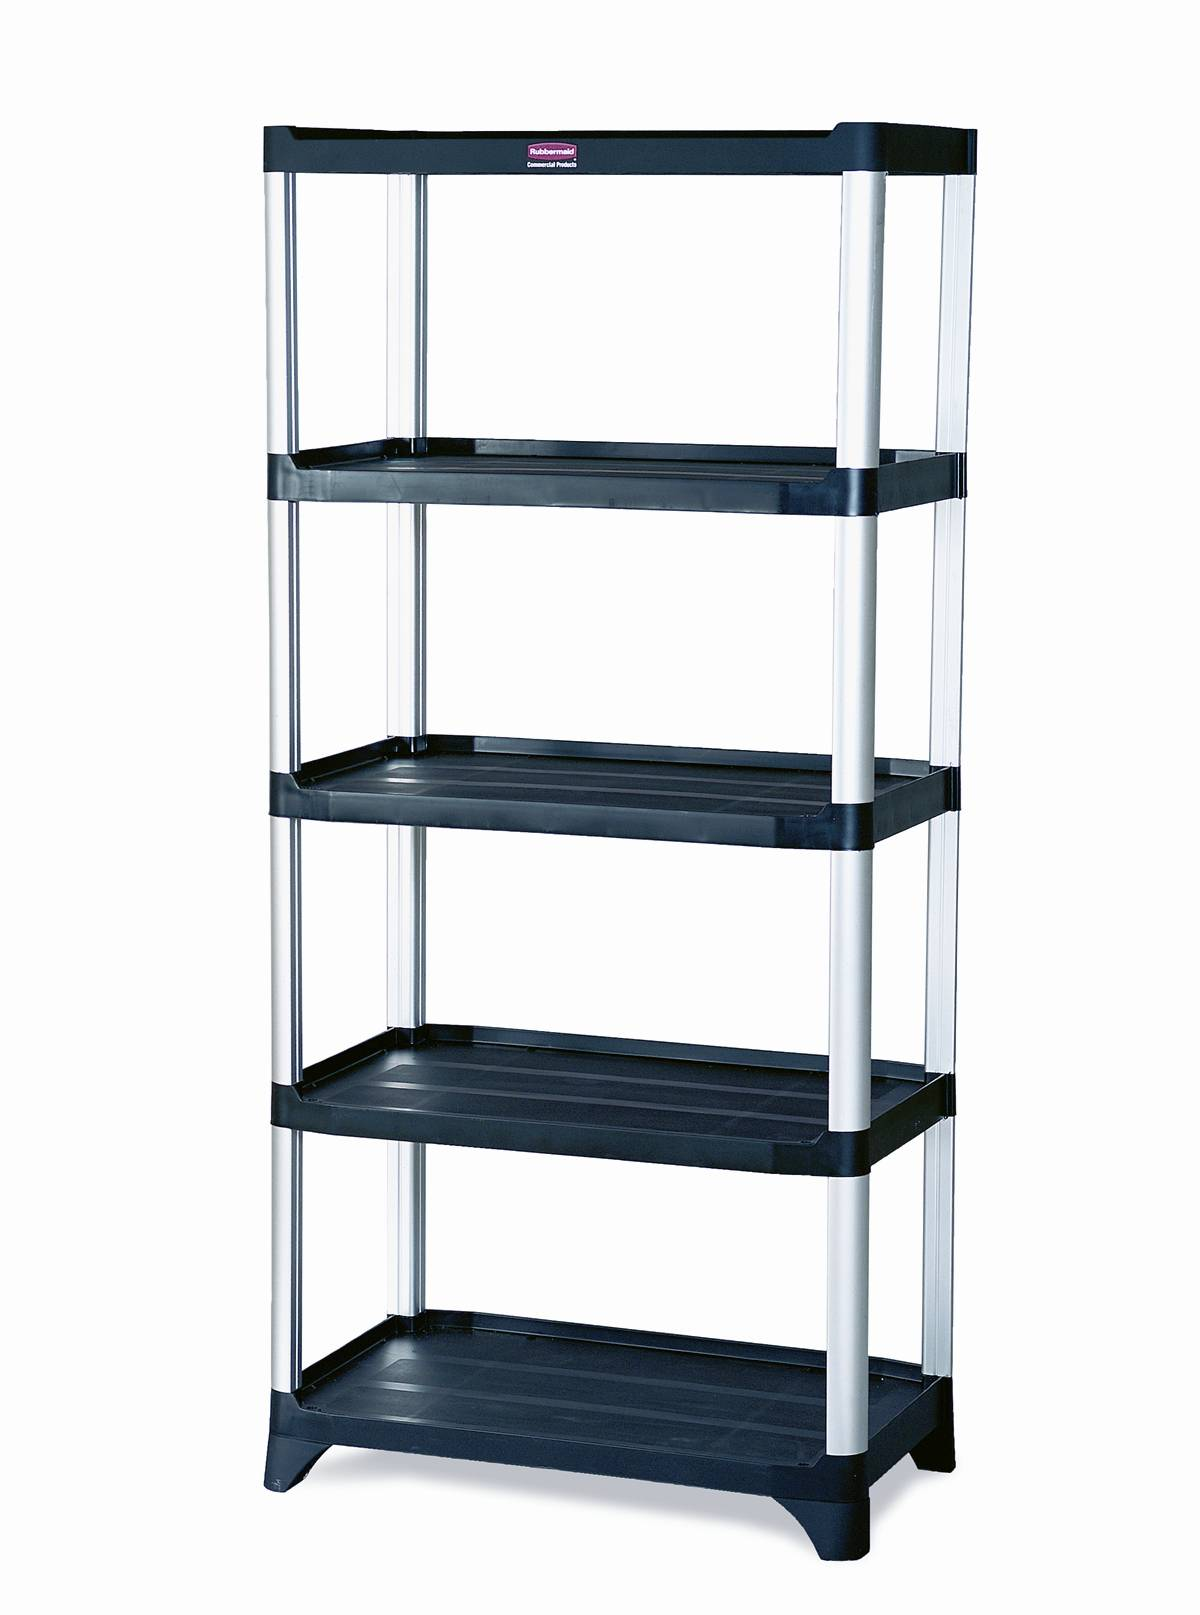 Rubbermaid 9T39 Shelving 5 Shelf Unit